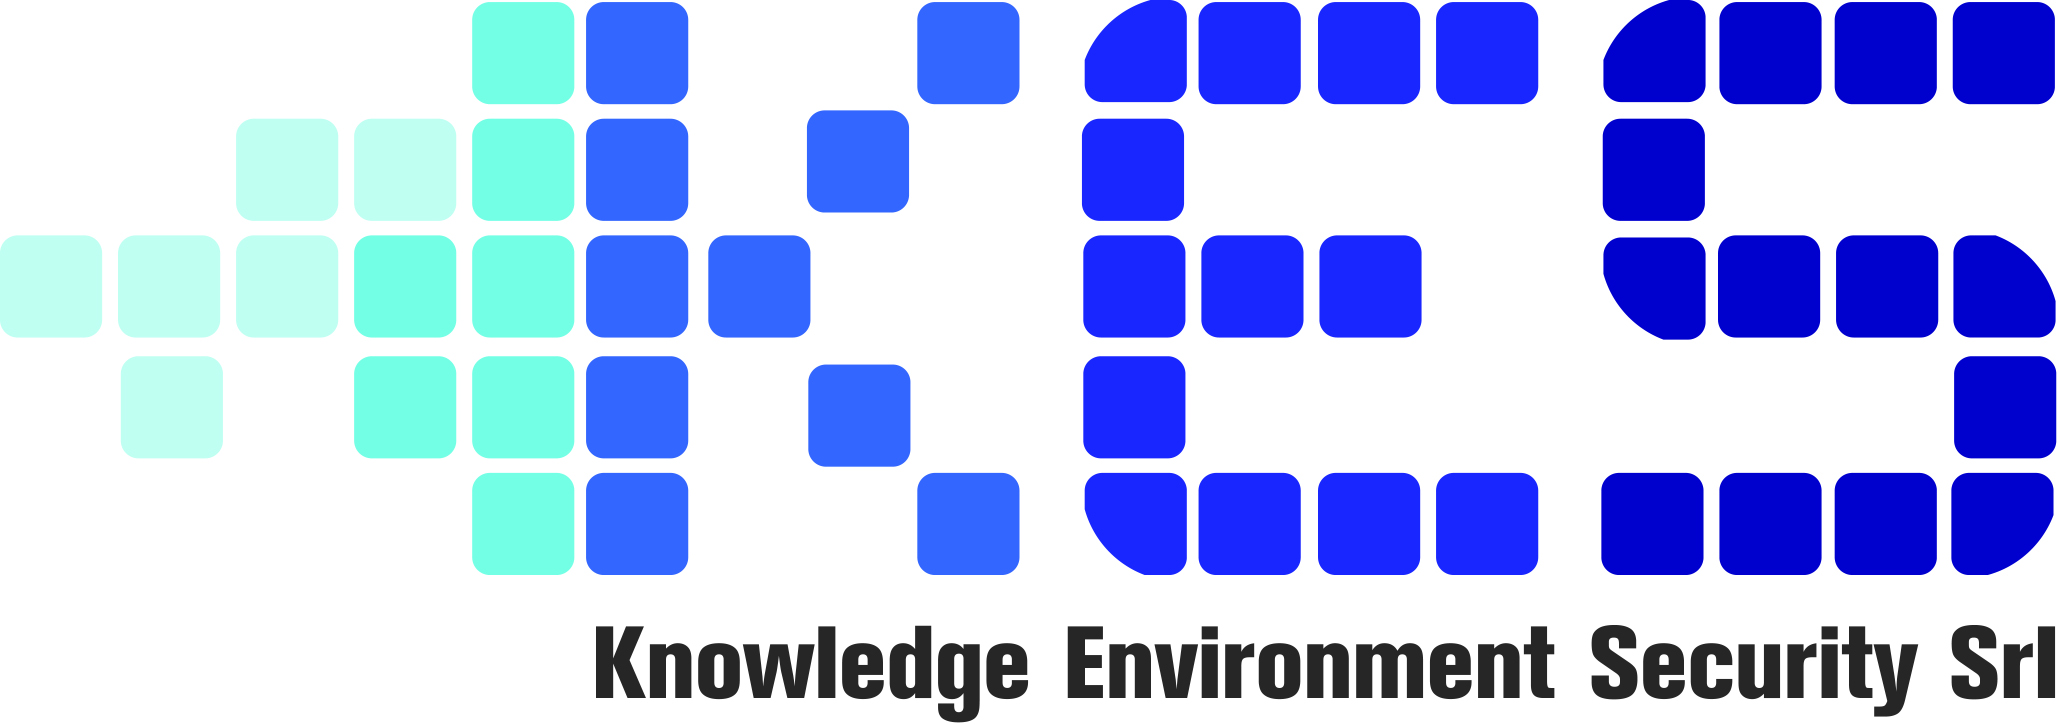 Knowledge Environment Security